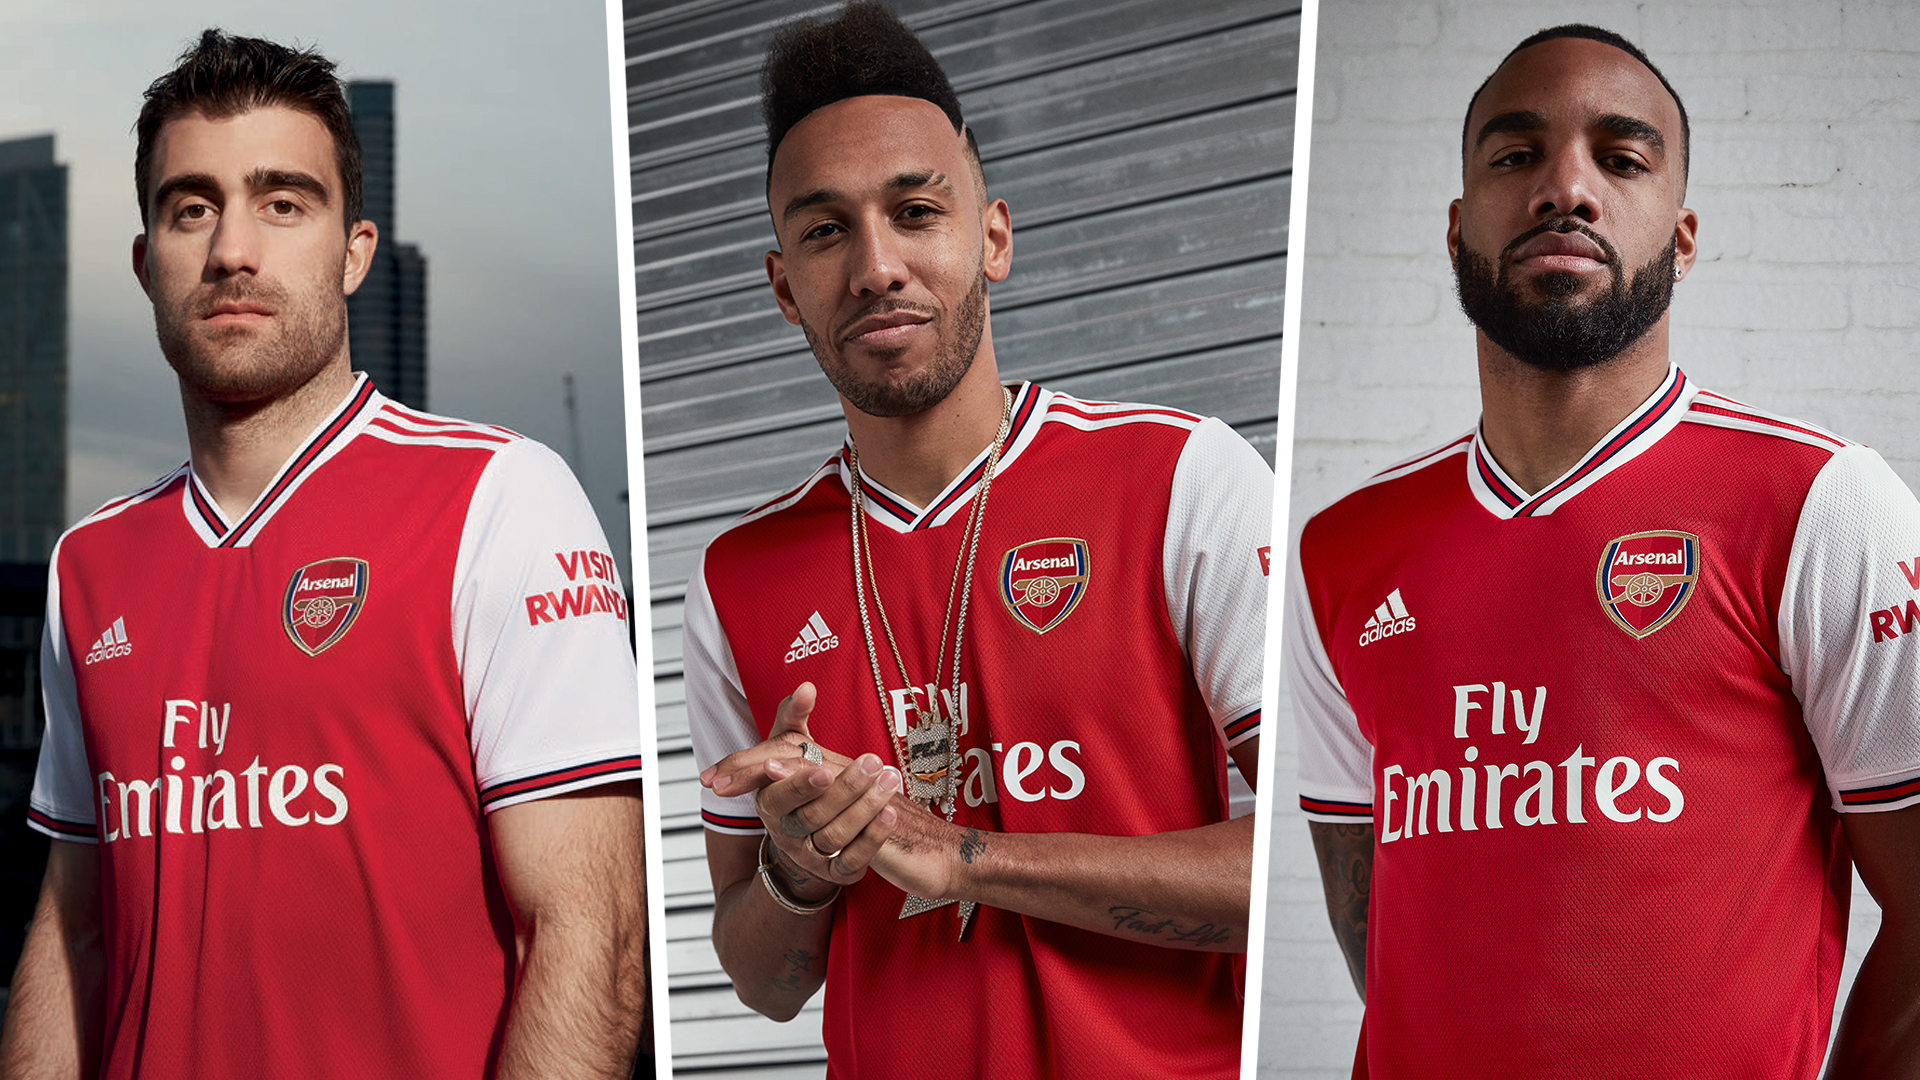 arsenal s kit launch becomes a disaster